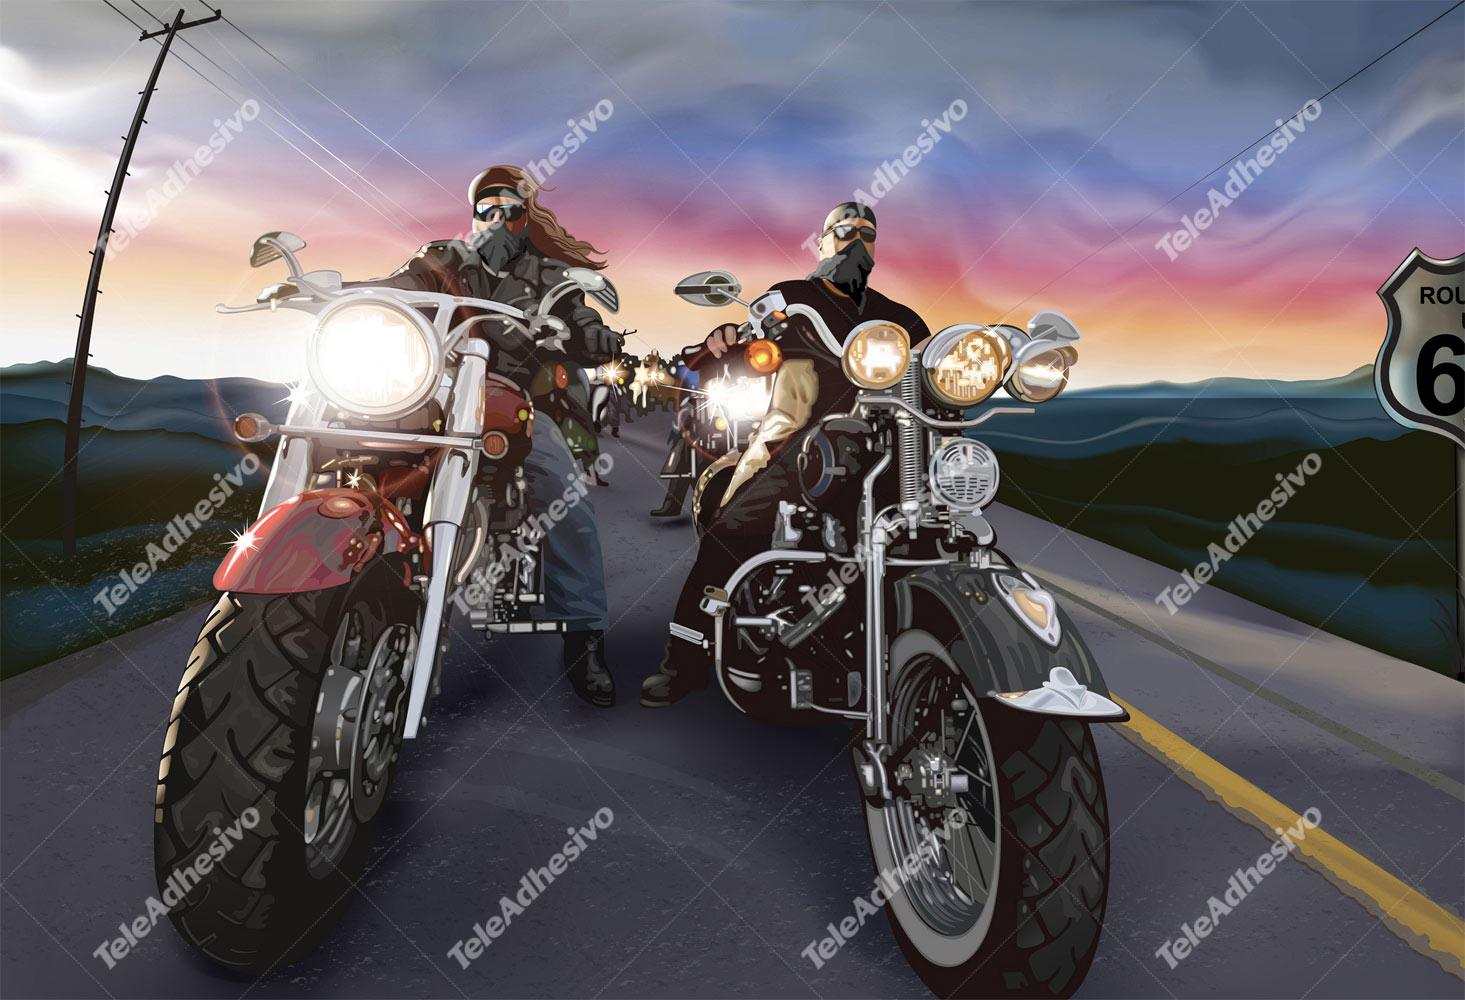 Fototapeten: Comic bikers